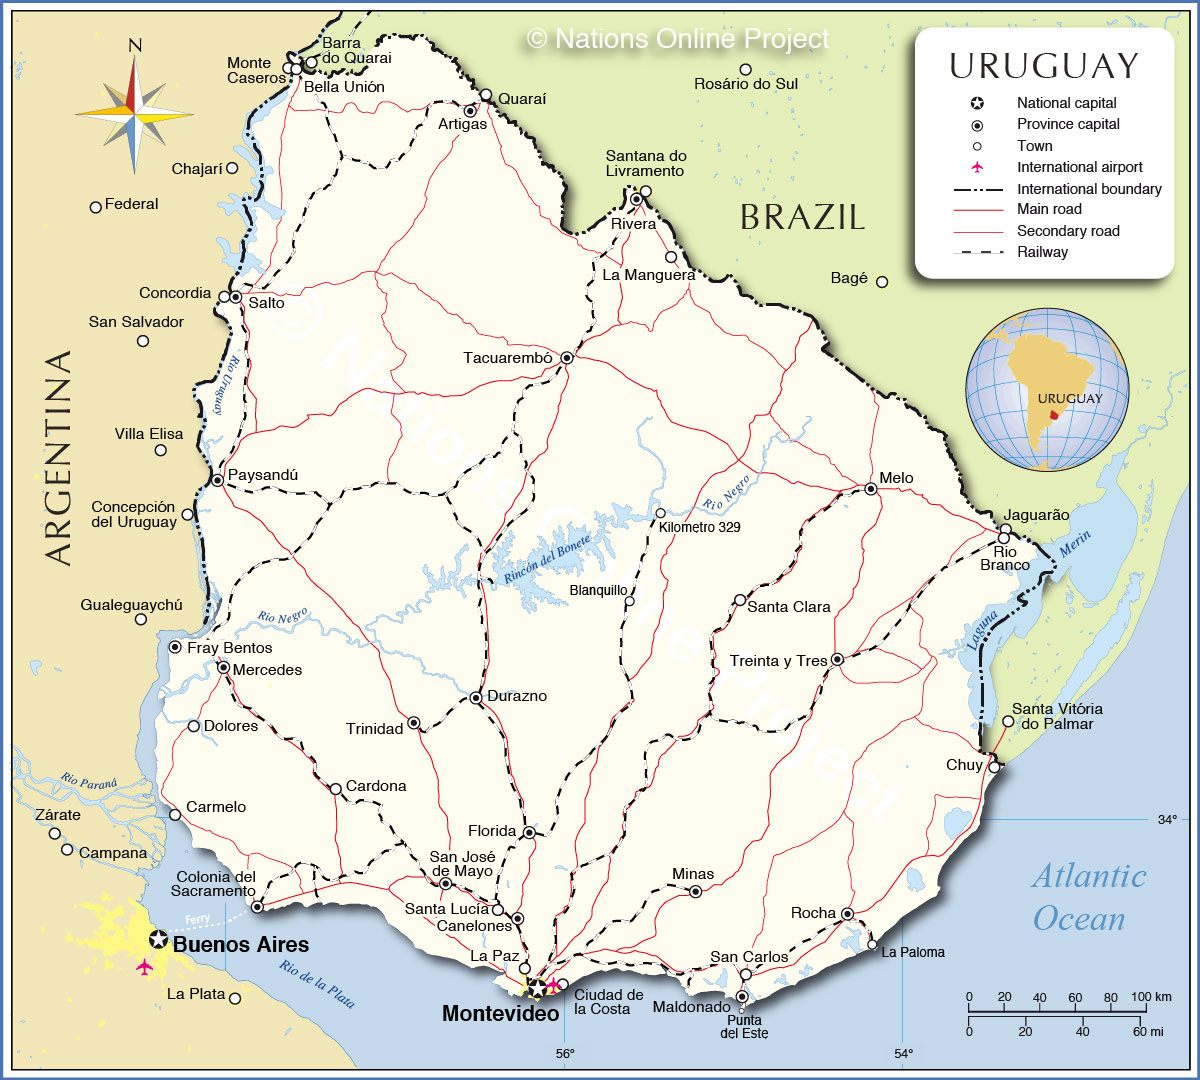 Detailed Map of Uruguay - Nations Online Project